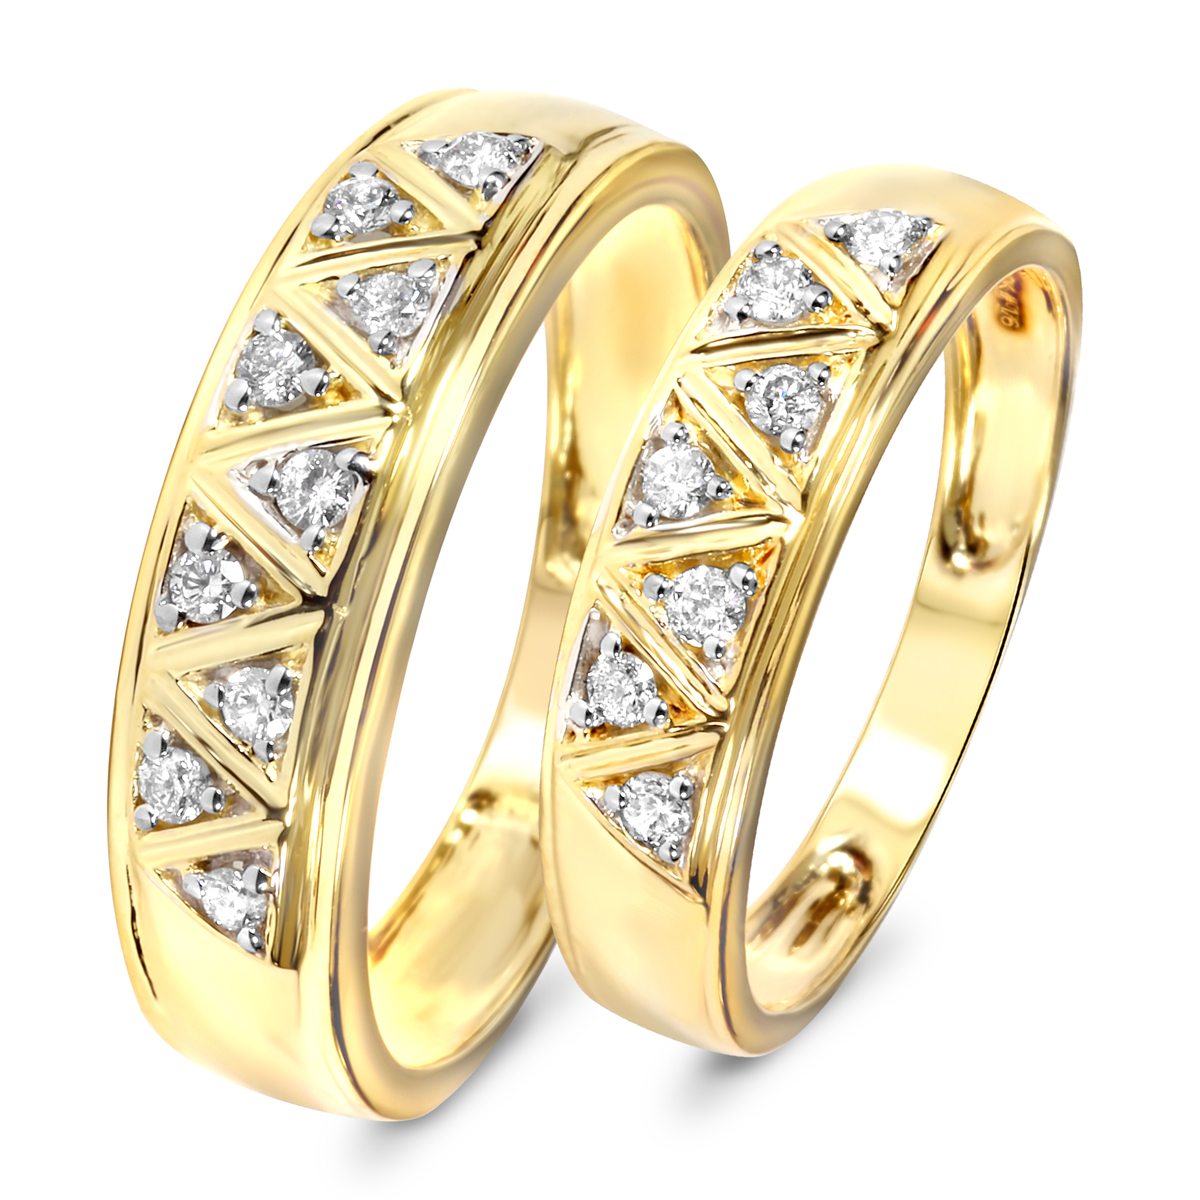 1/3 Carat T.W. Diamond His And Hers Wedding Band Set 14K Yellow Gold